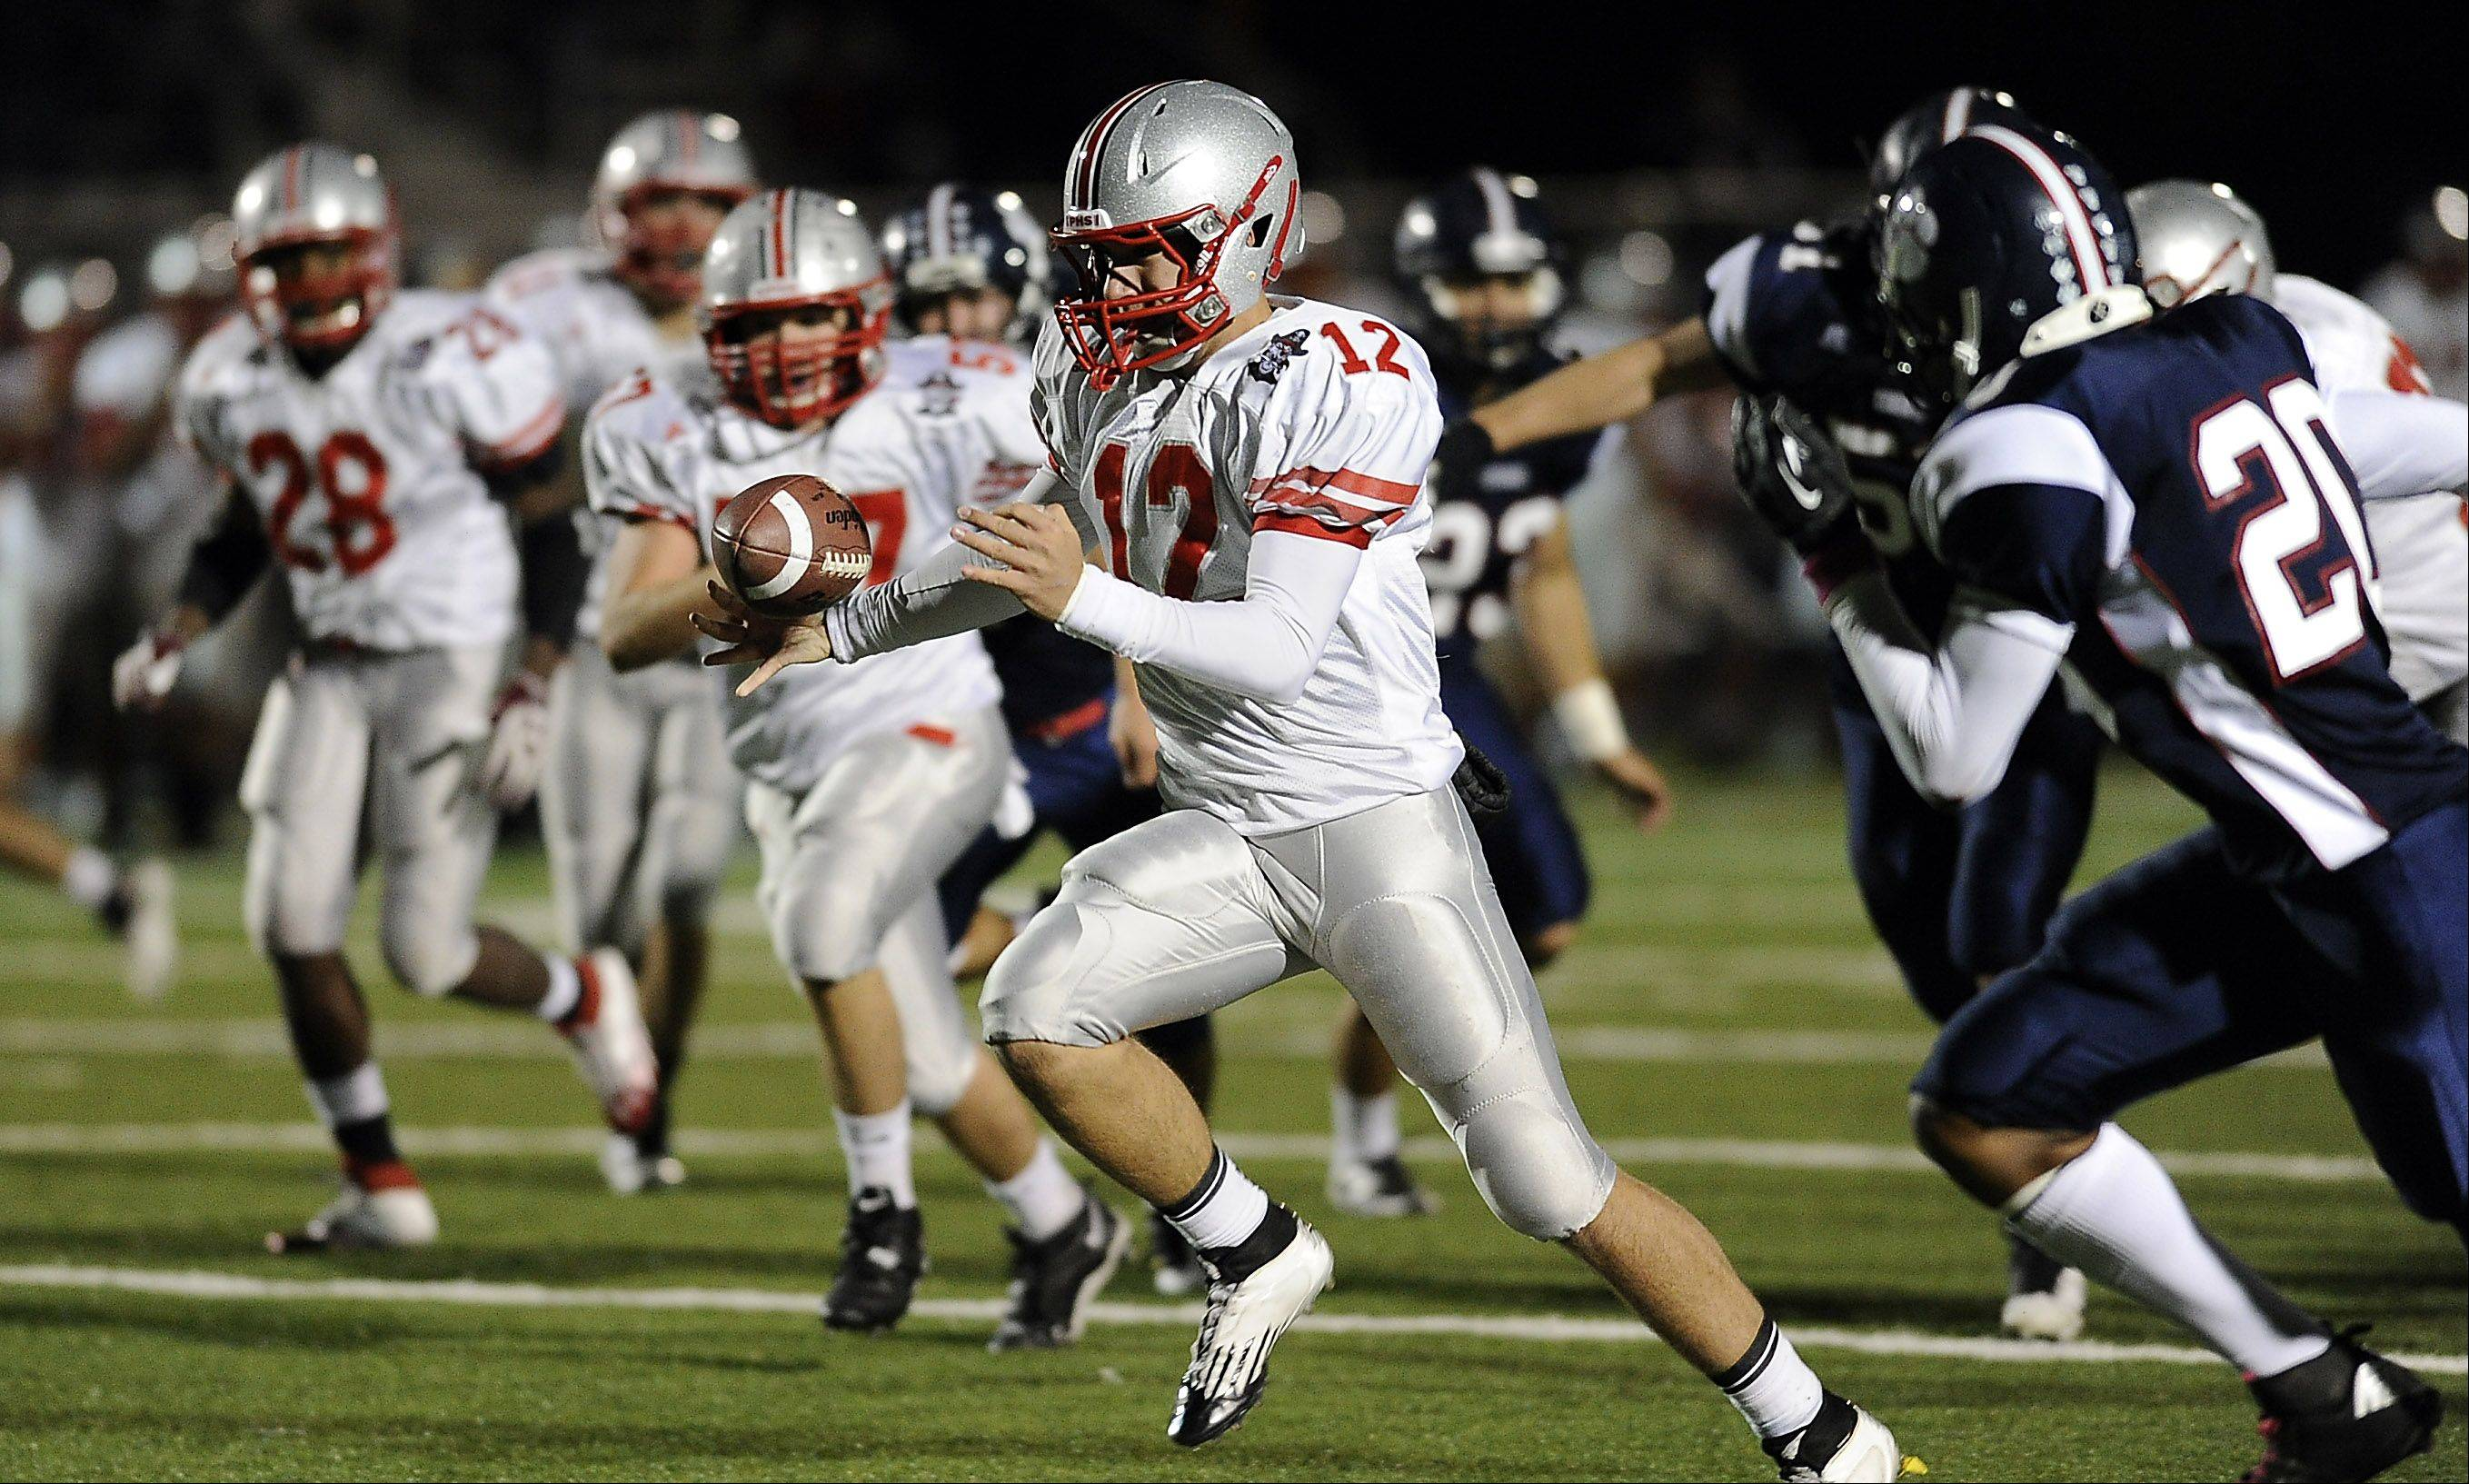 Palatine's quarterback Ethan Olles tries to maintain control of the ball as he runs.